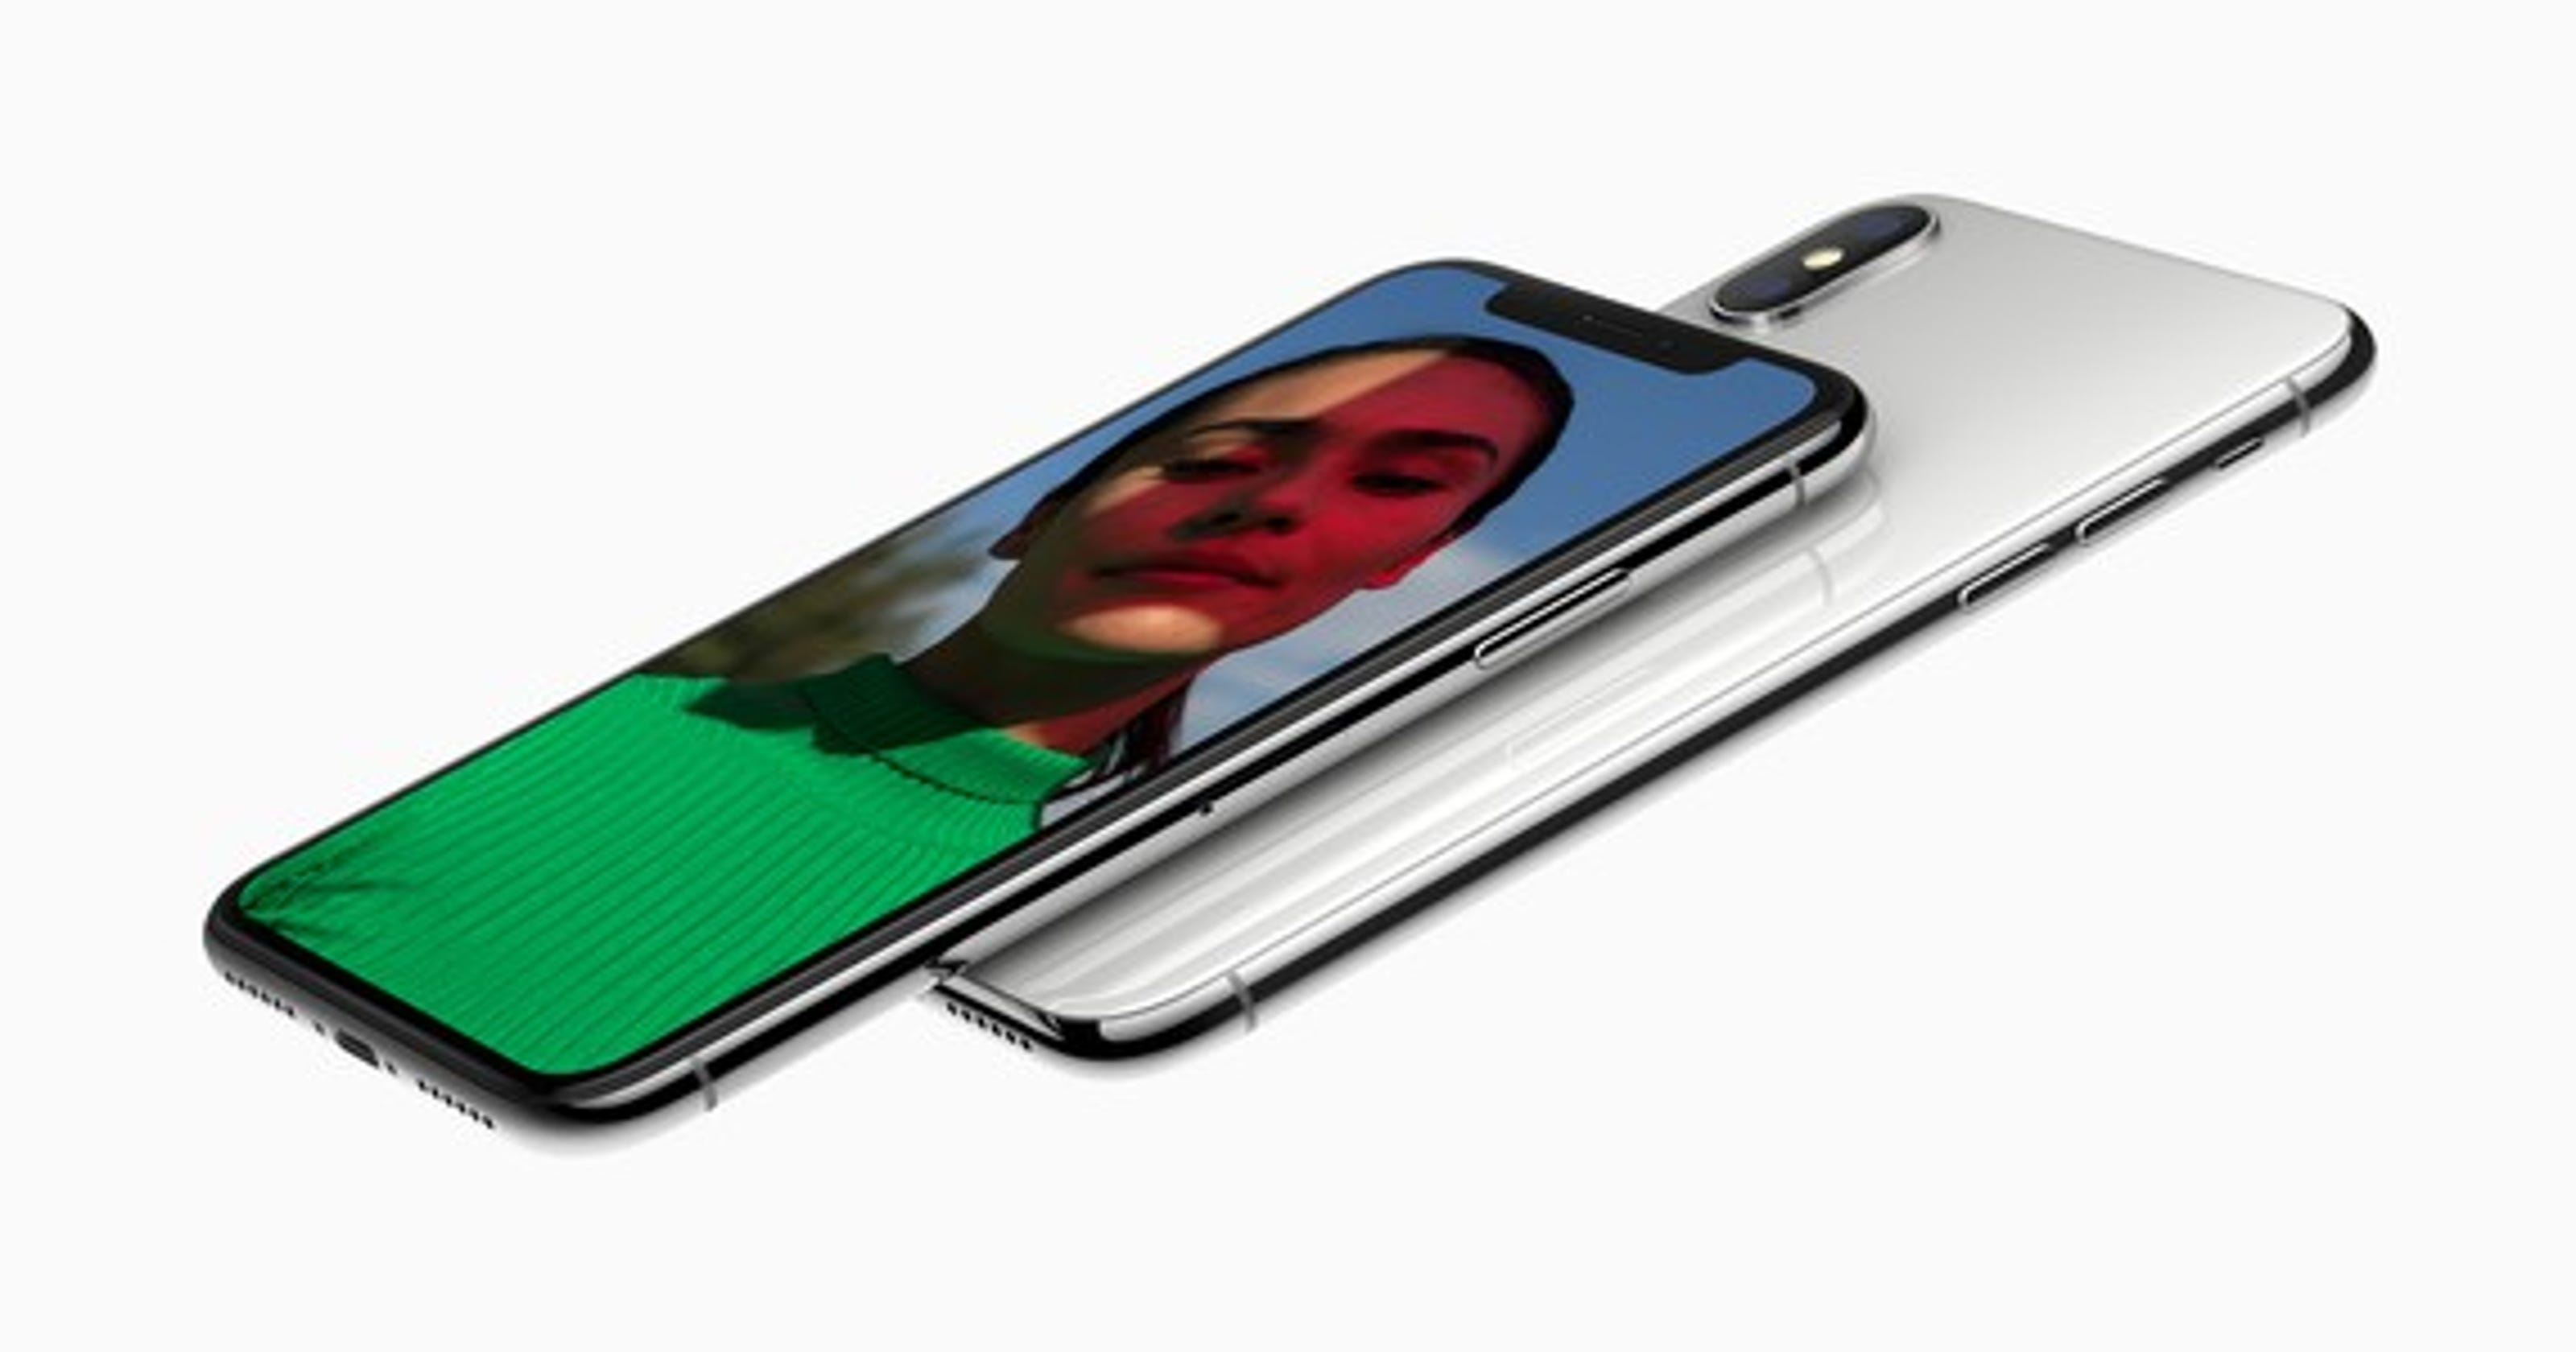 sports shoes a6448 5376f iPhone X: Apple says some displays experiencing touch issues